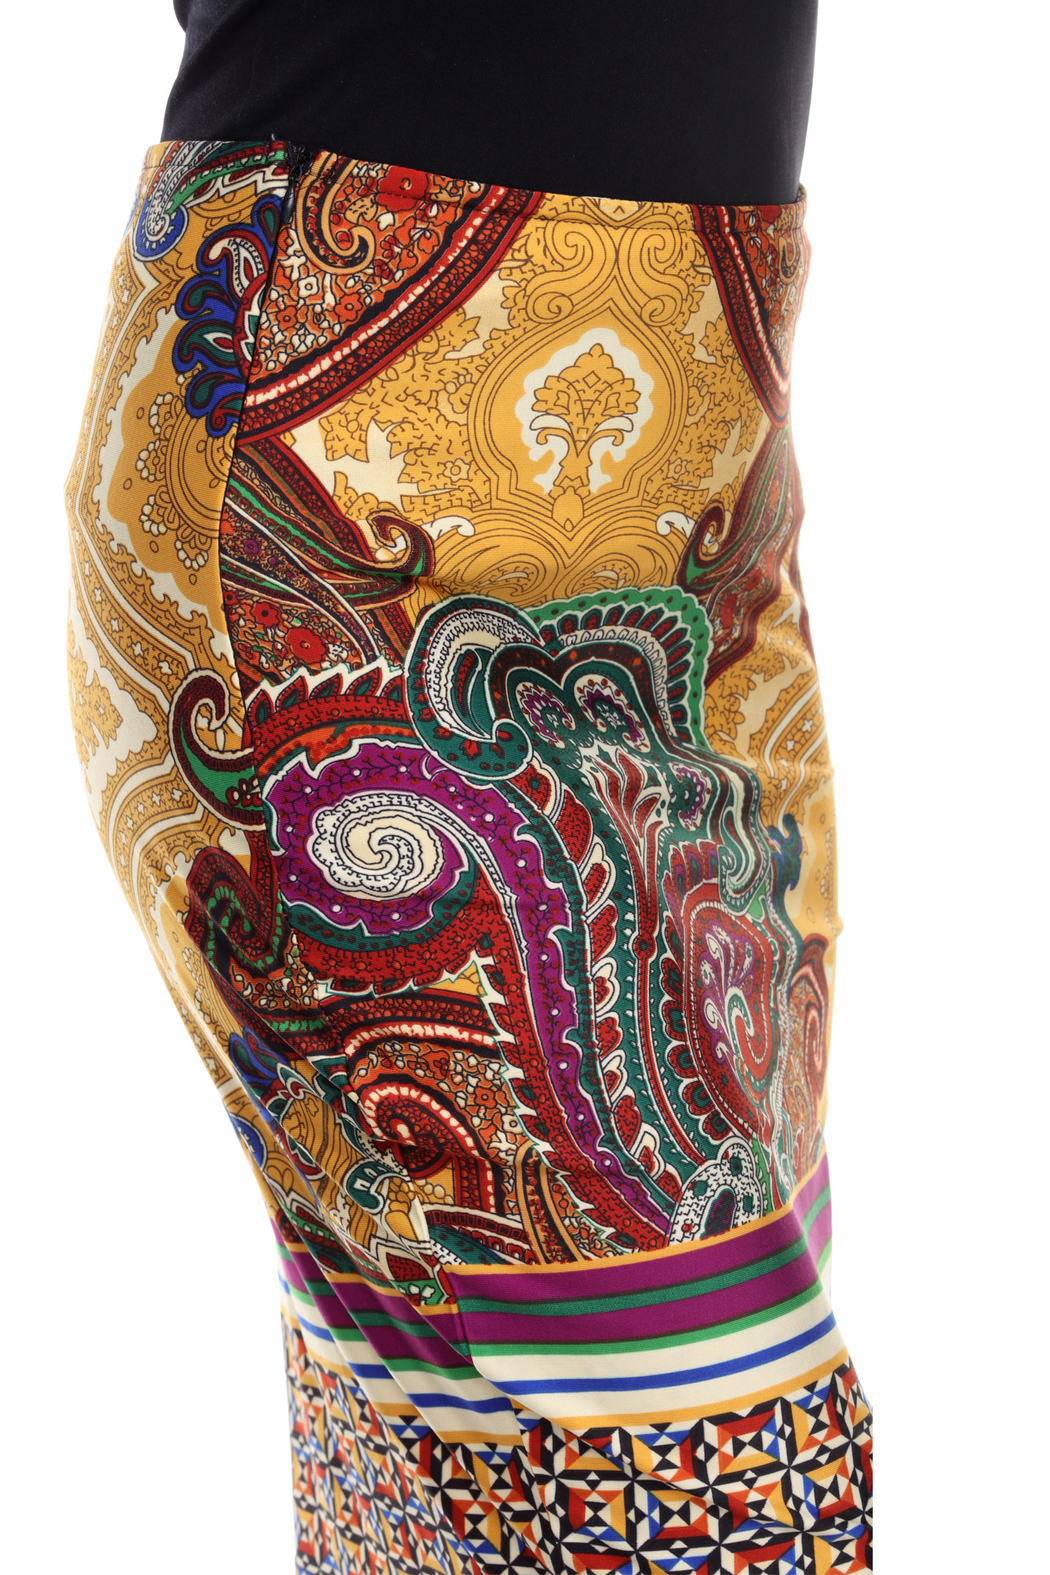 WhiteMark White Mark's Vintage Paisley Printed Pencil Skirt - Side Cropped Image